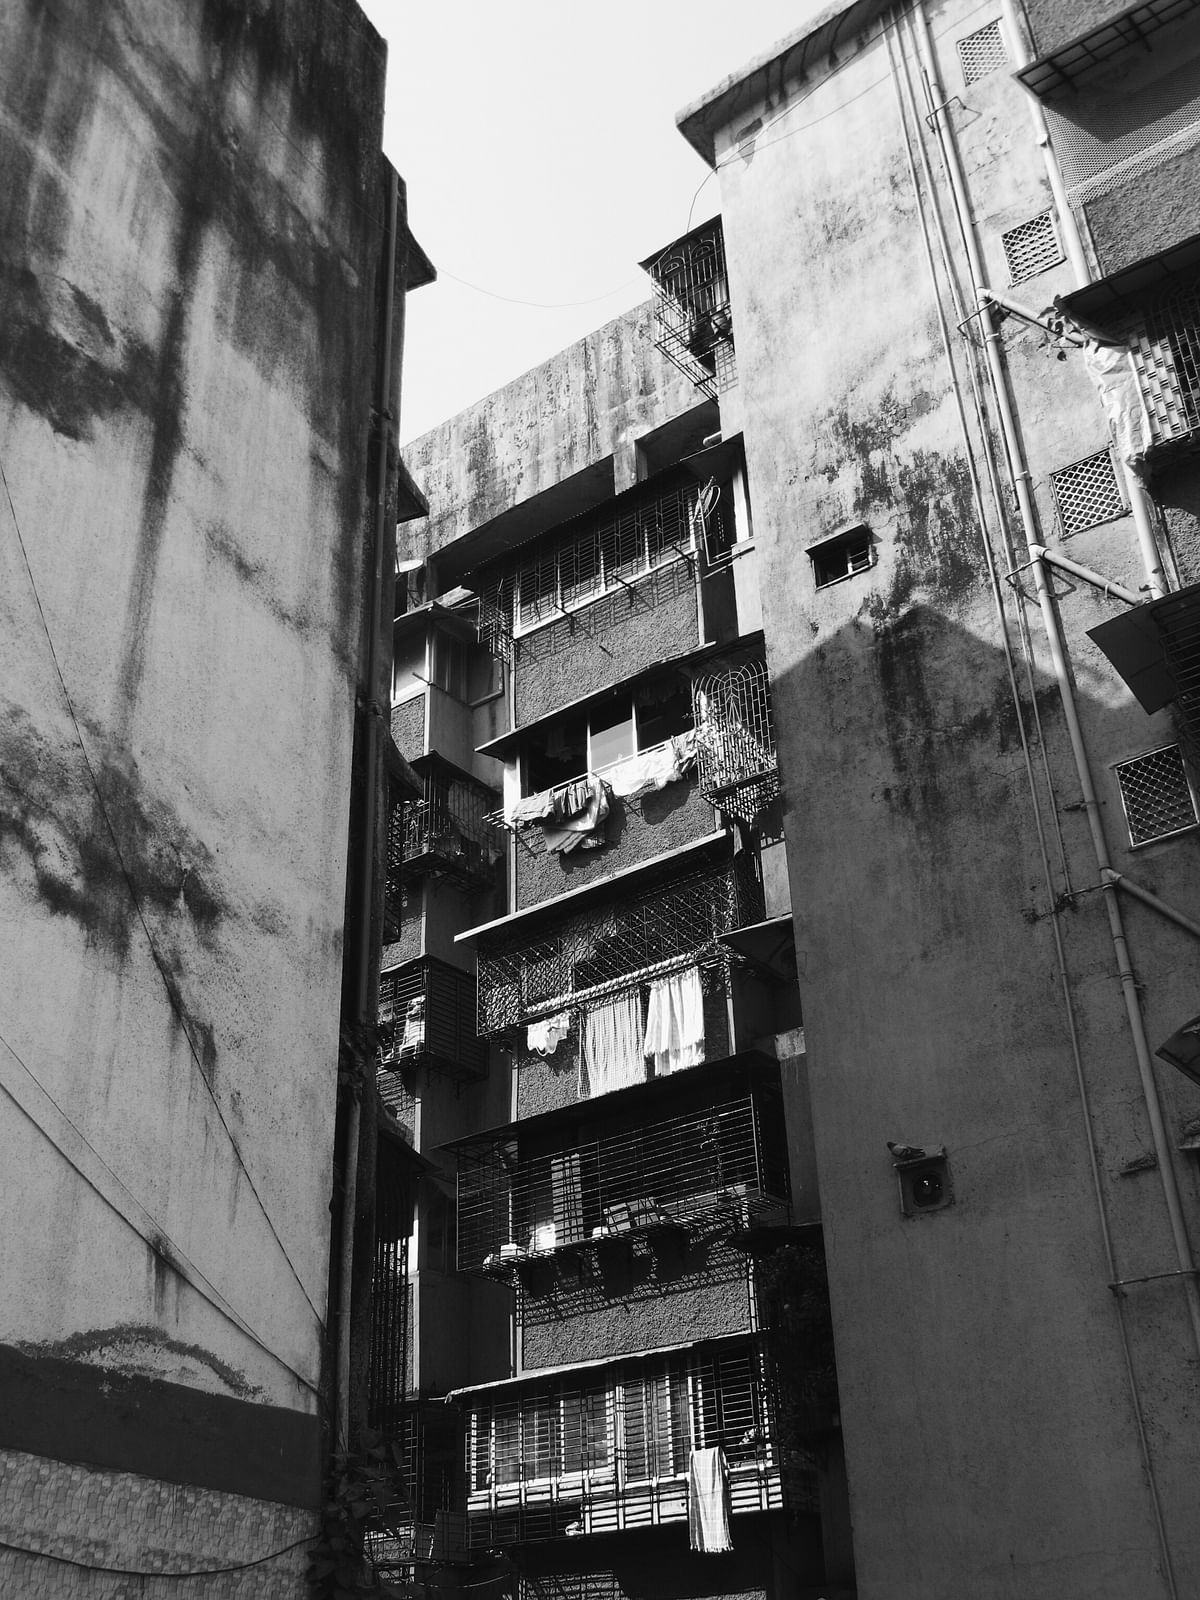 I clicked this image as I walked around Lalbaug trying to understand the residential structure of the locality. And the first thing that came to my mind was the question of privacy in a city like Mumbai. (Photo: <b>The Quint</b>/Maanvi)